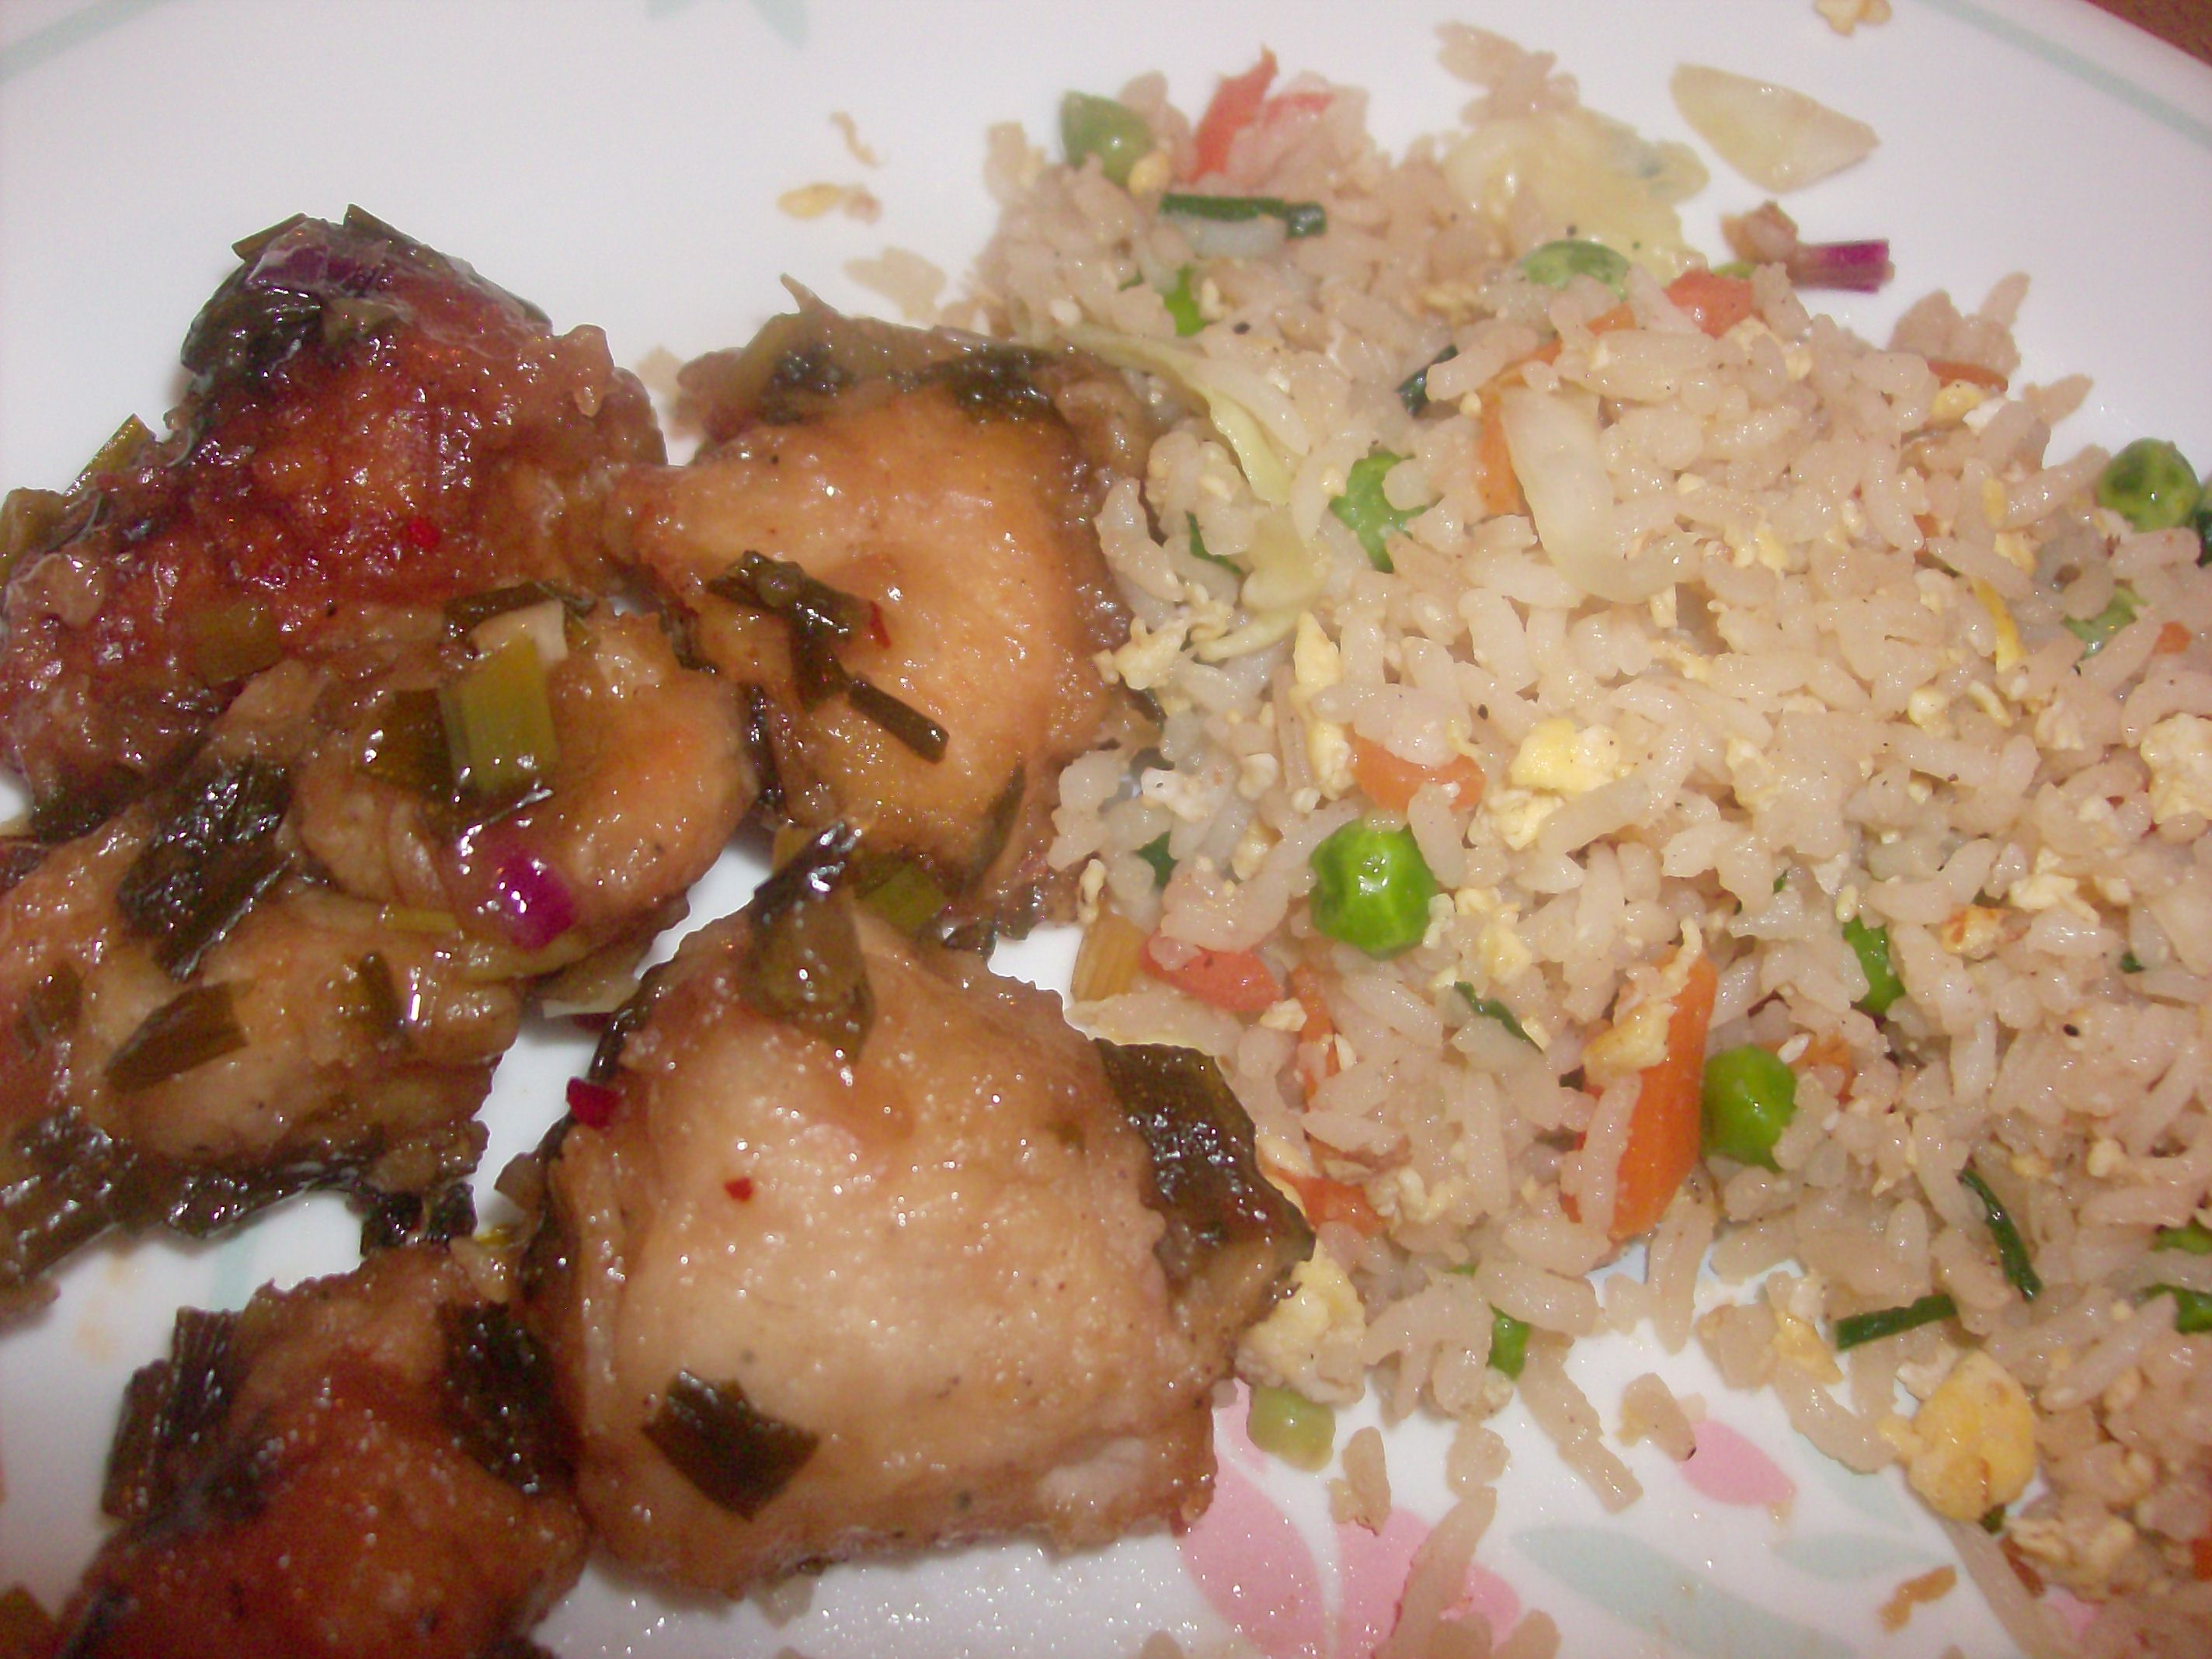 Copycat Recipe: Panda Express Orange Chicken